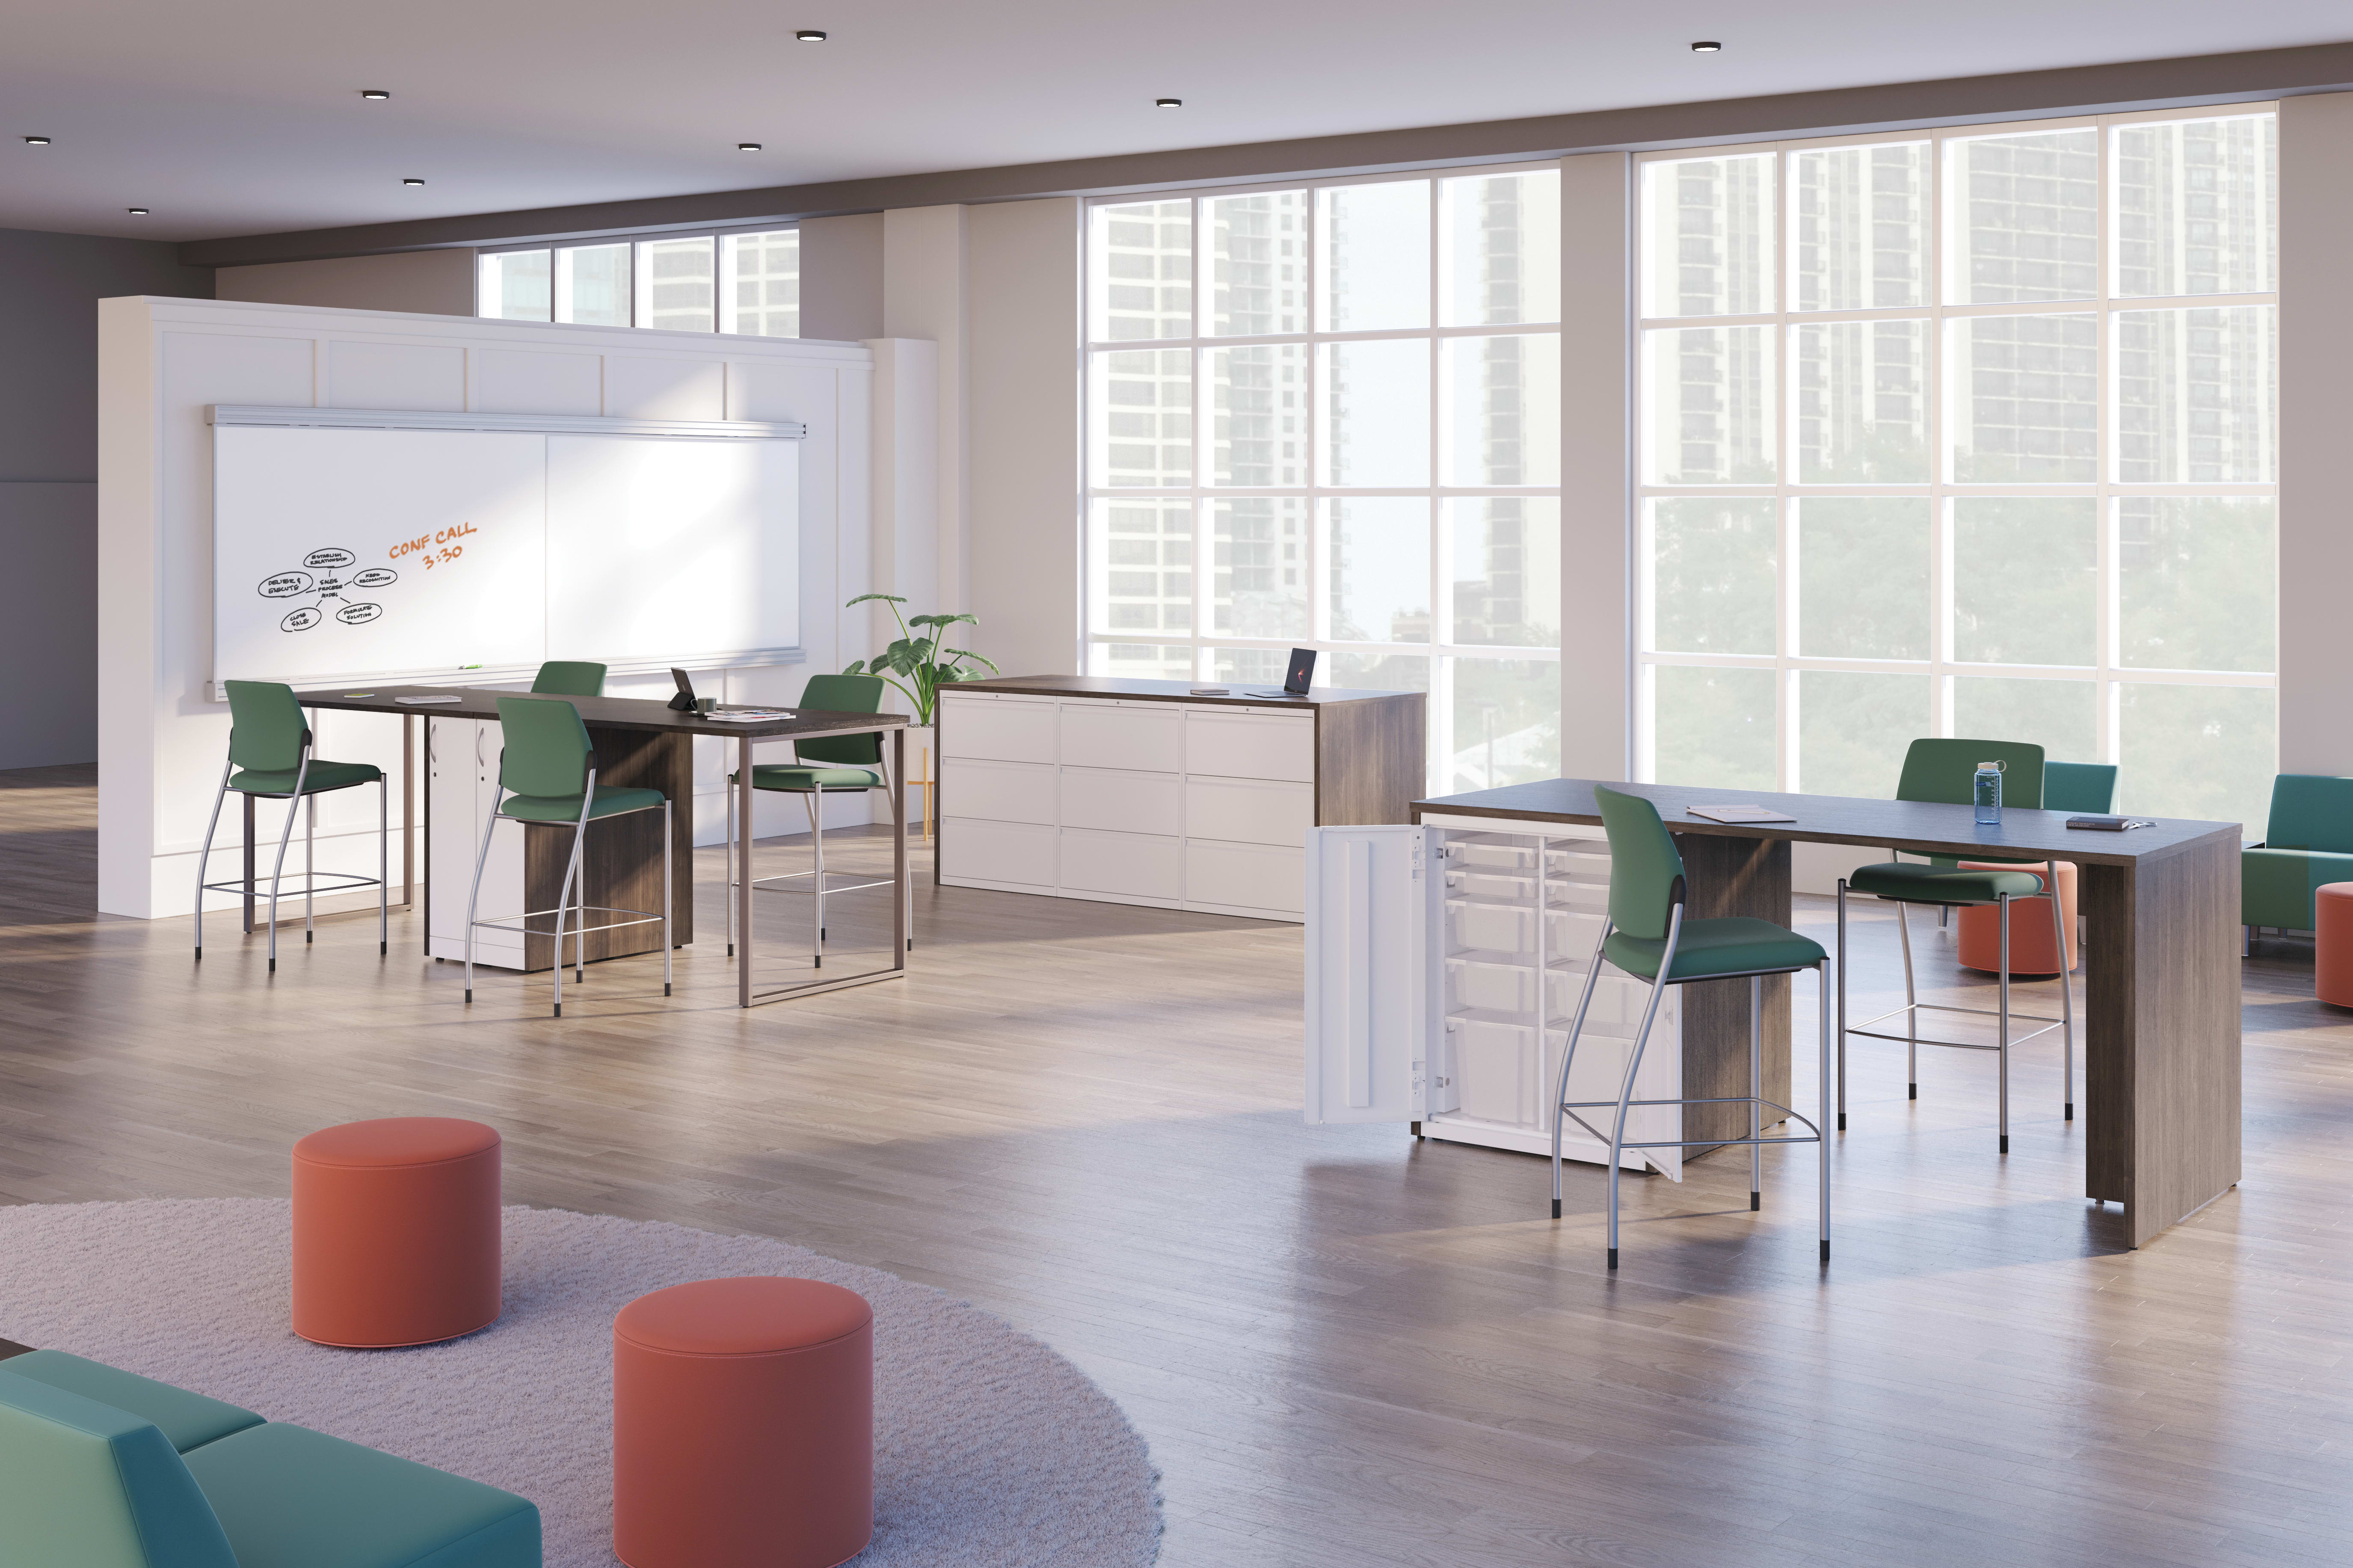 Ignition café height stools shown at café height Storage Islands with Flock lounge seating.